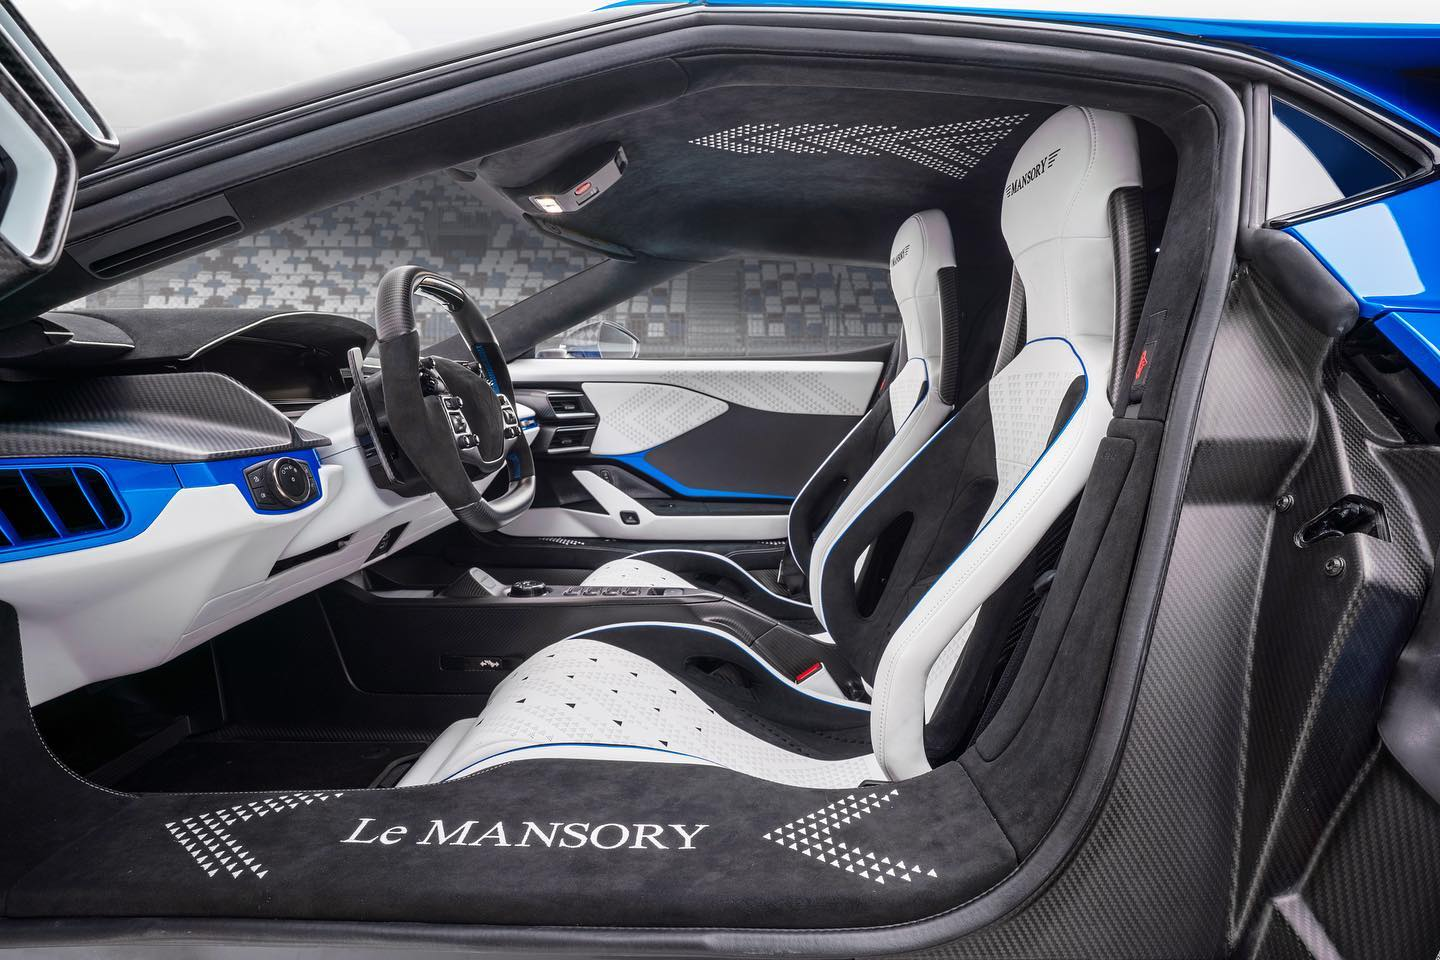 Ford-GT-by-Mansory-Le-Mansory-9